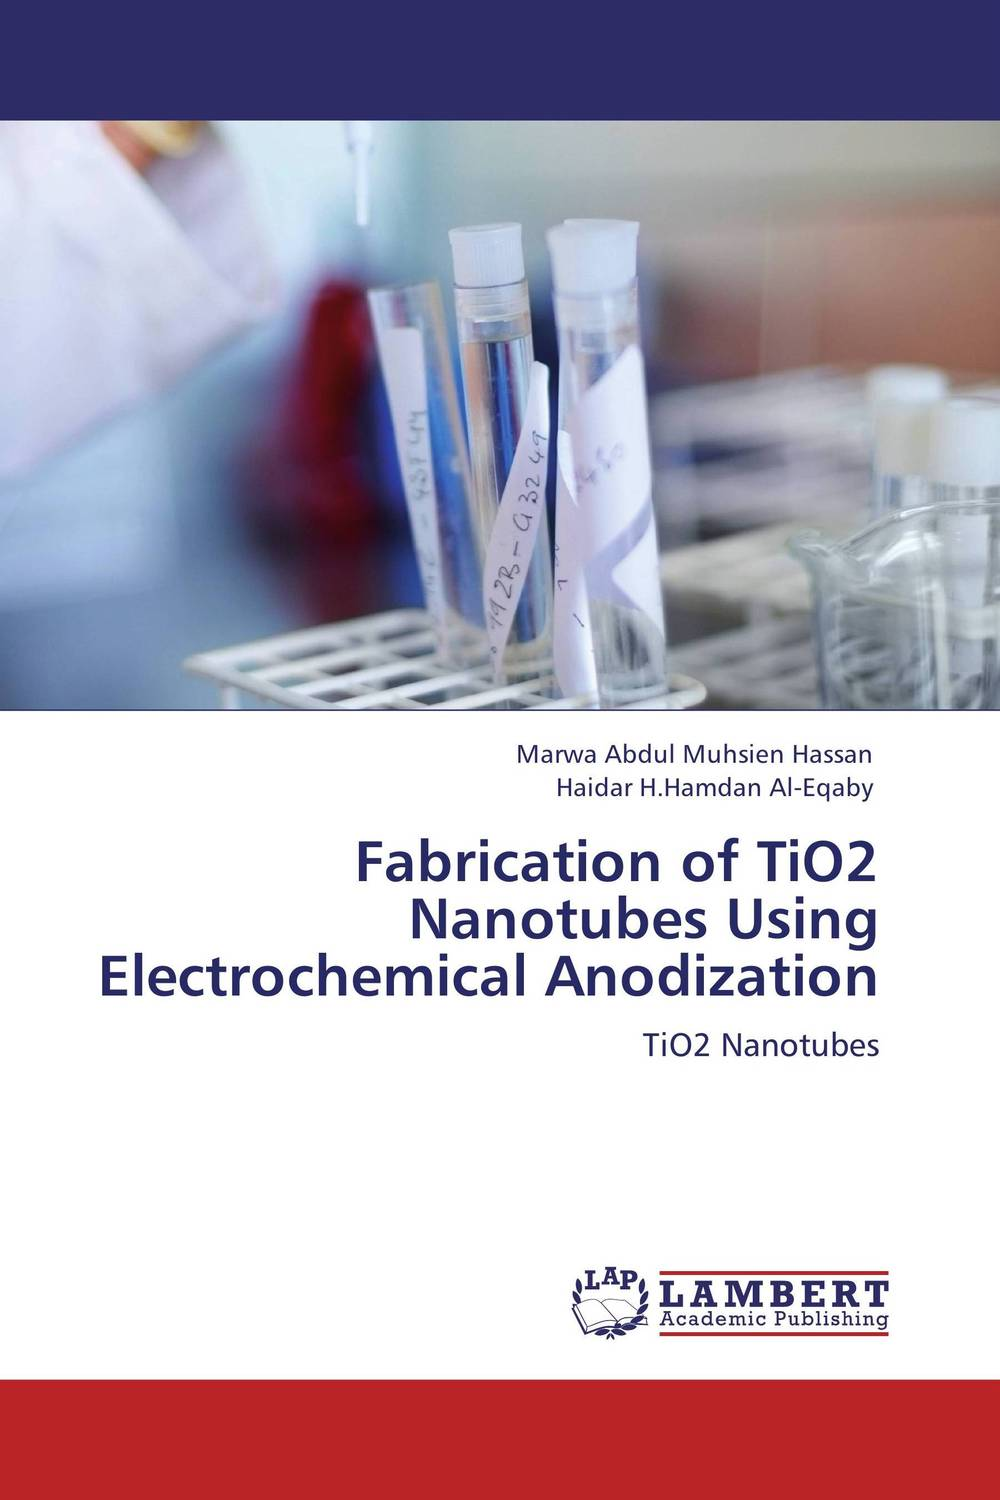 Fabrication of TiO2 Nanotubes Using Electrochemical Anodization patterson james i funny